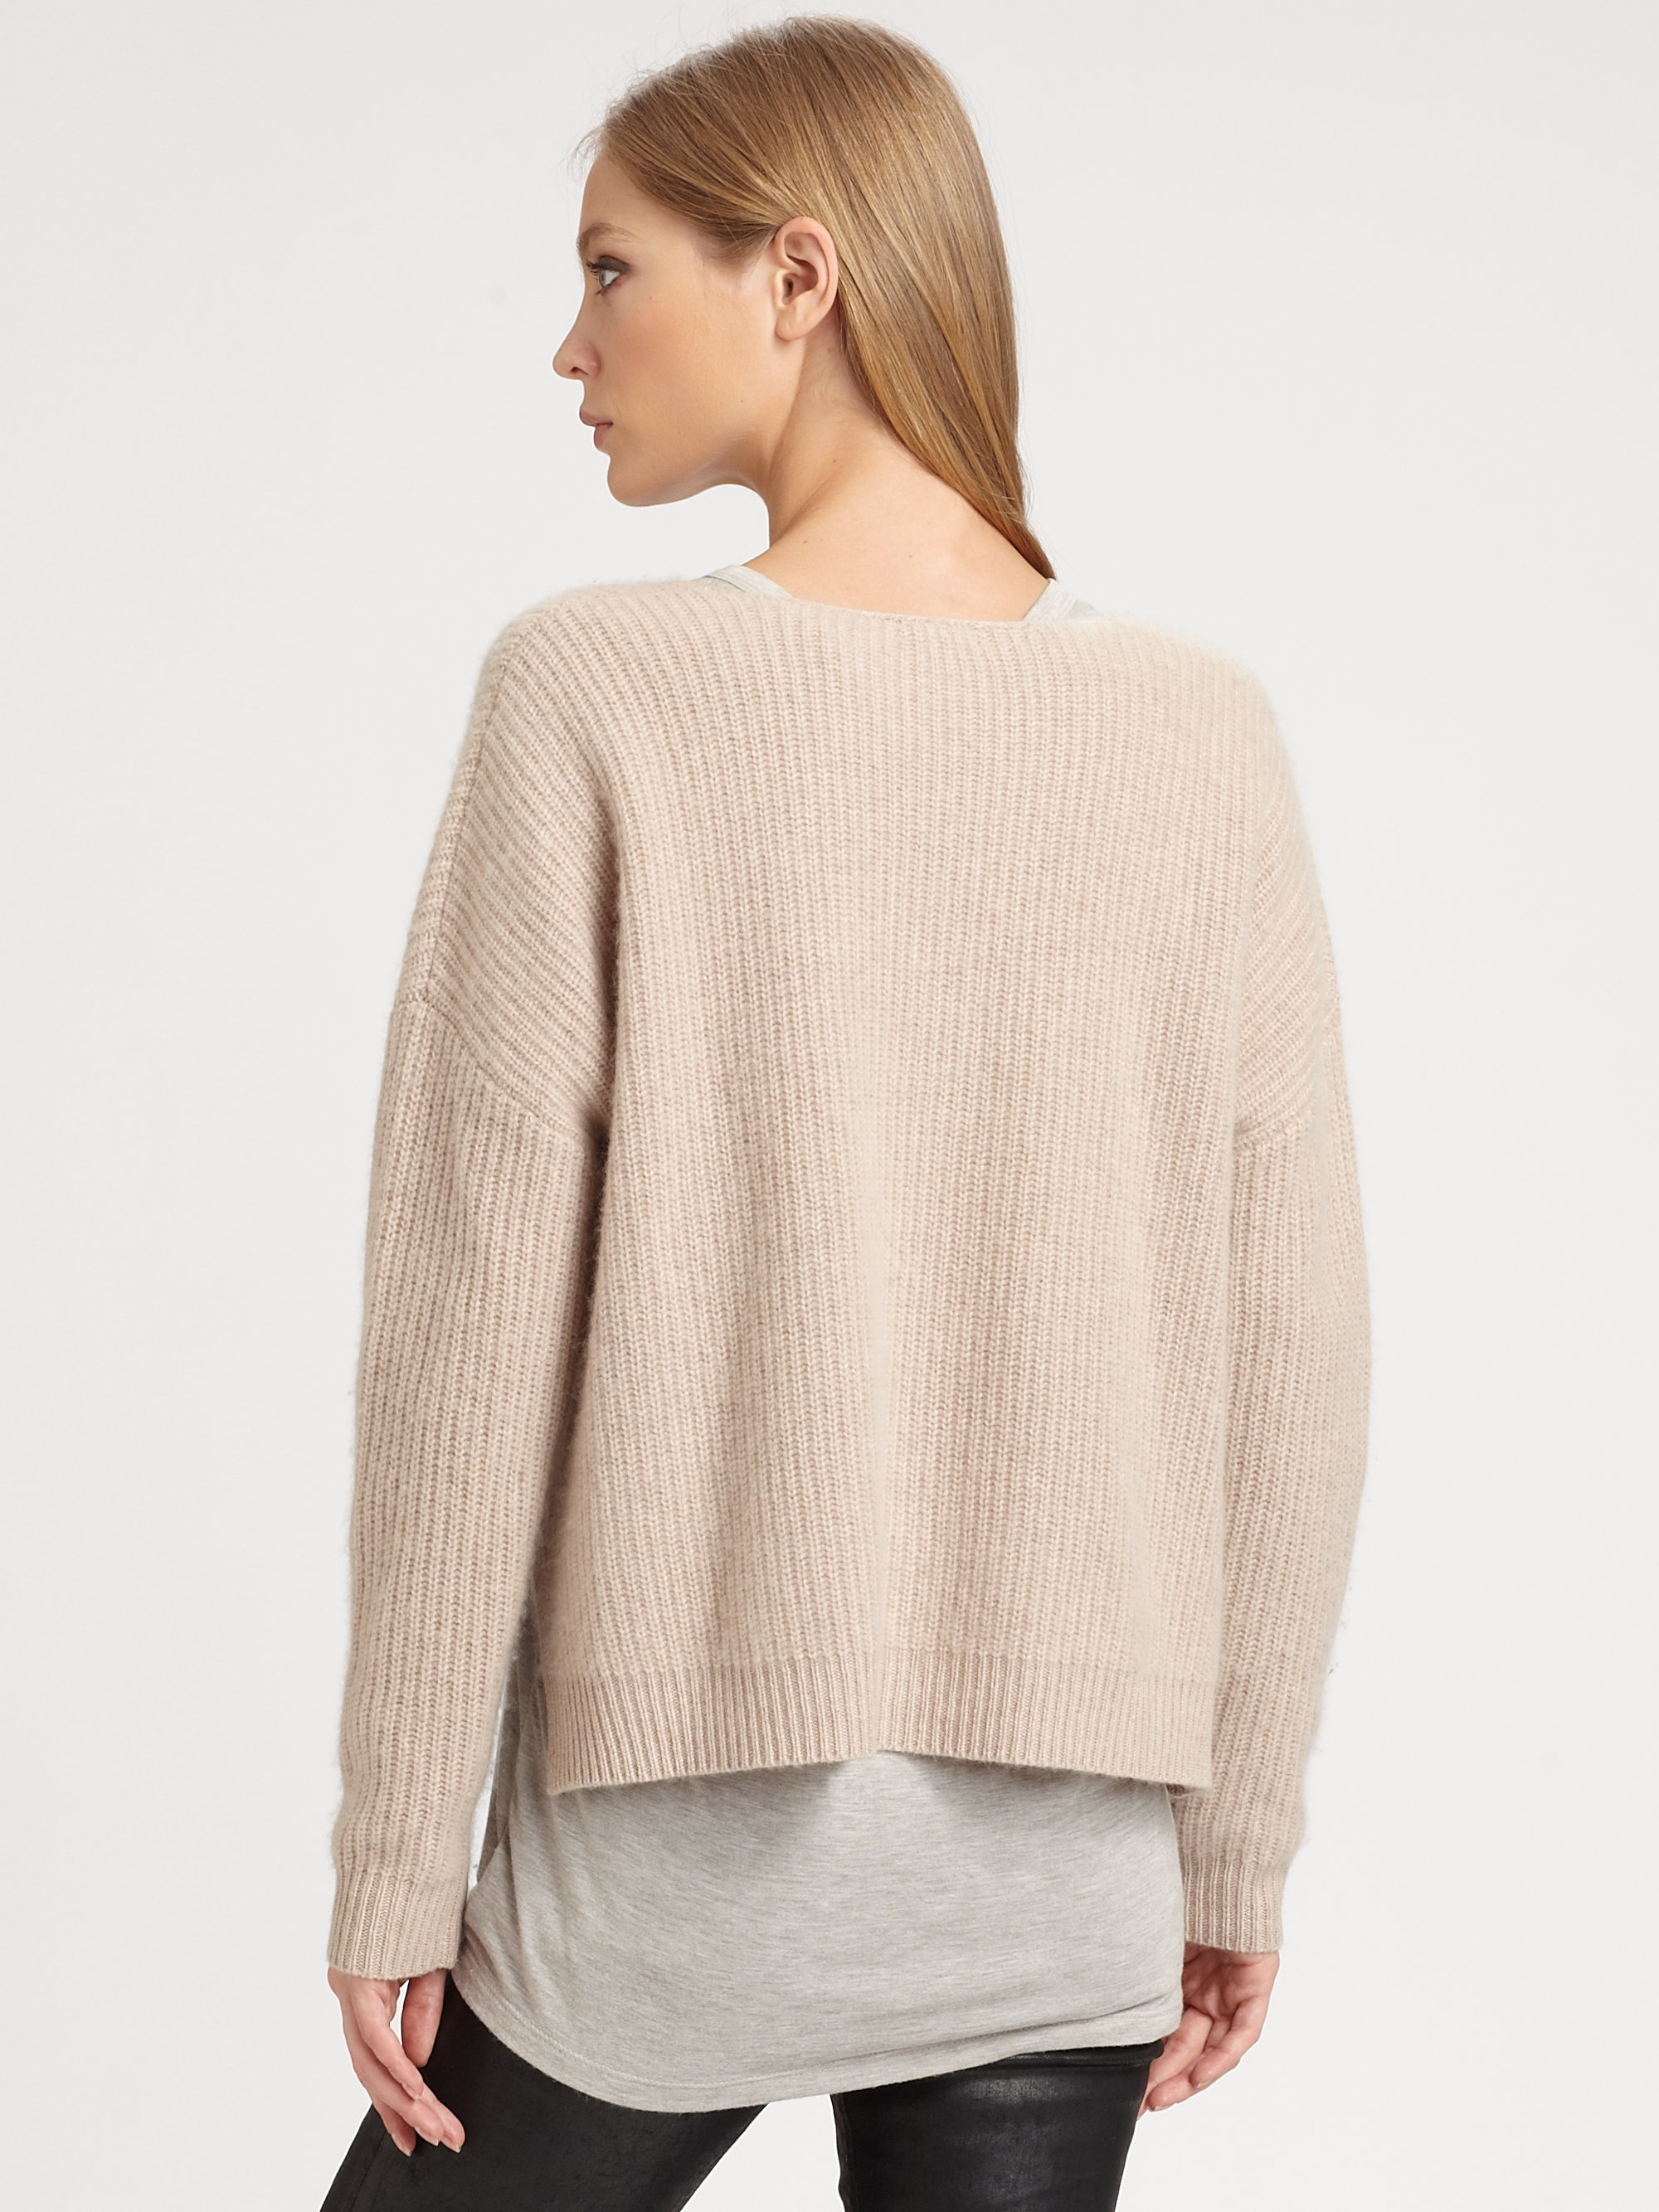 Demylee Alex Ribbed Cashmere Sweater in Natural | Lyst